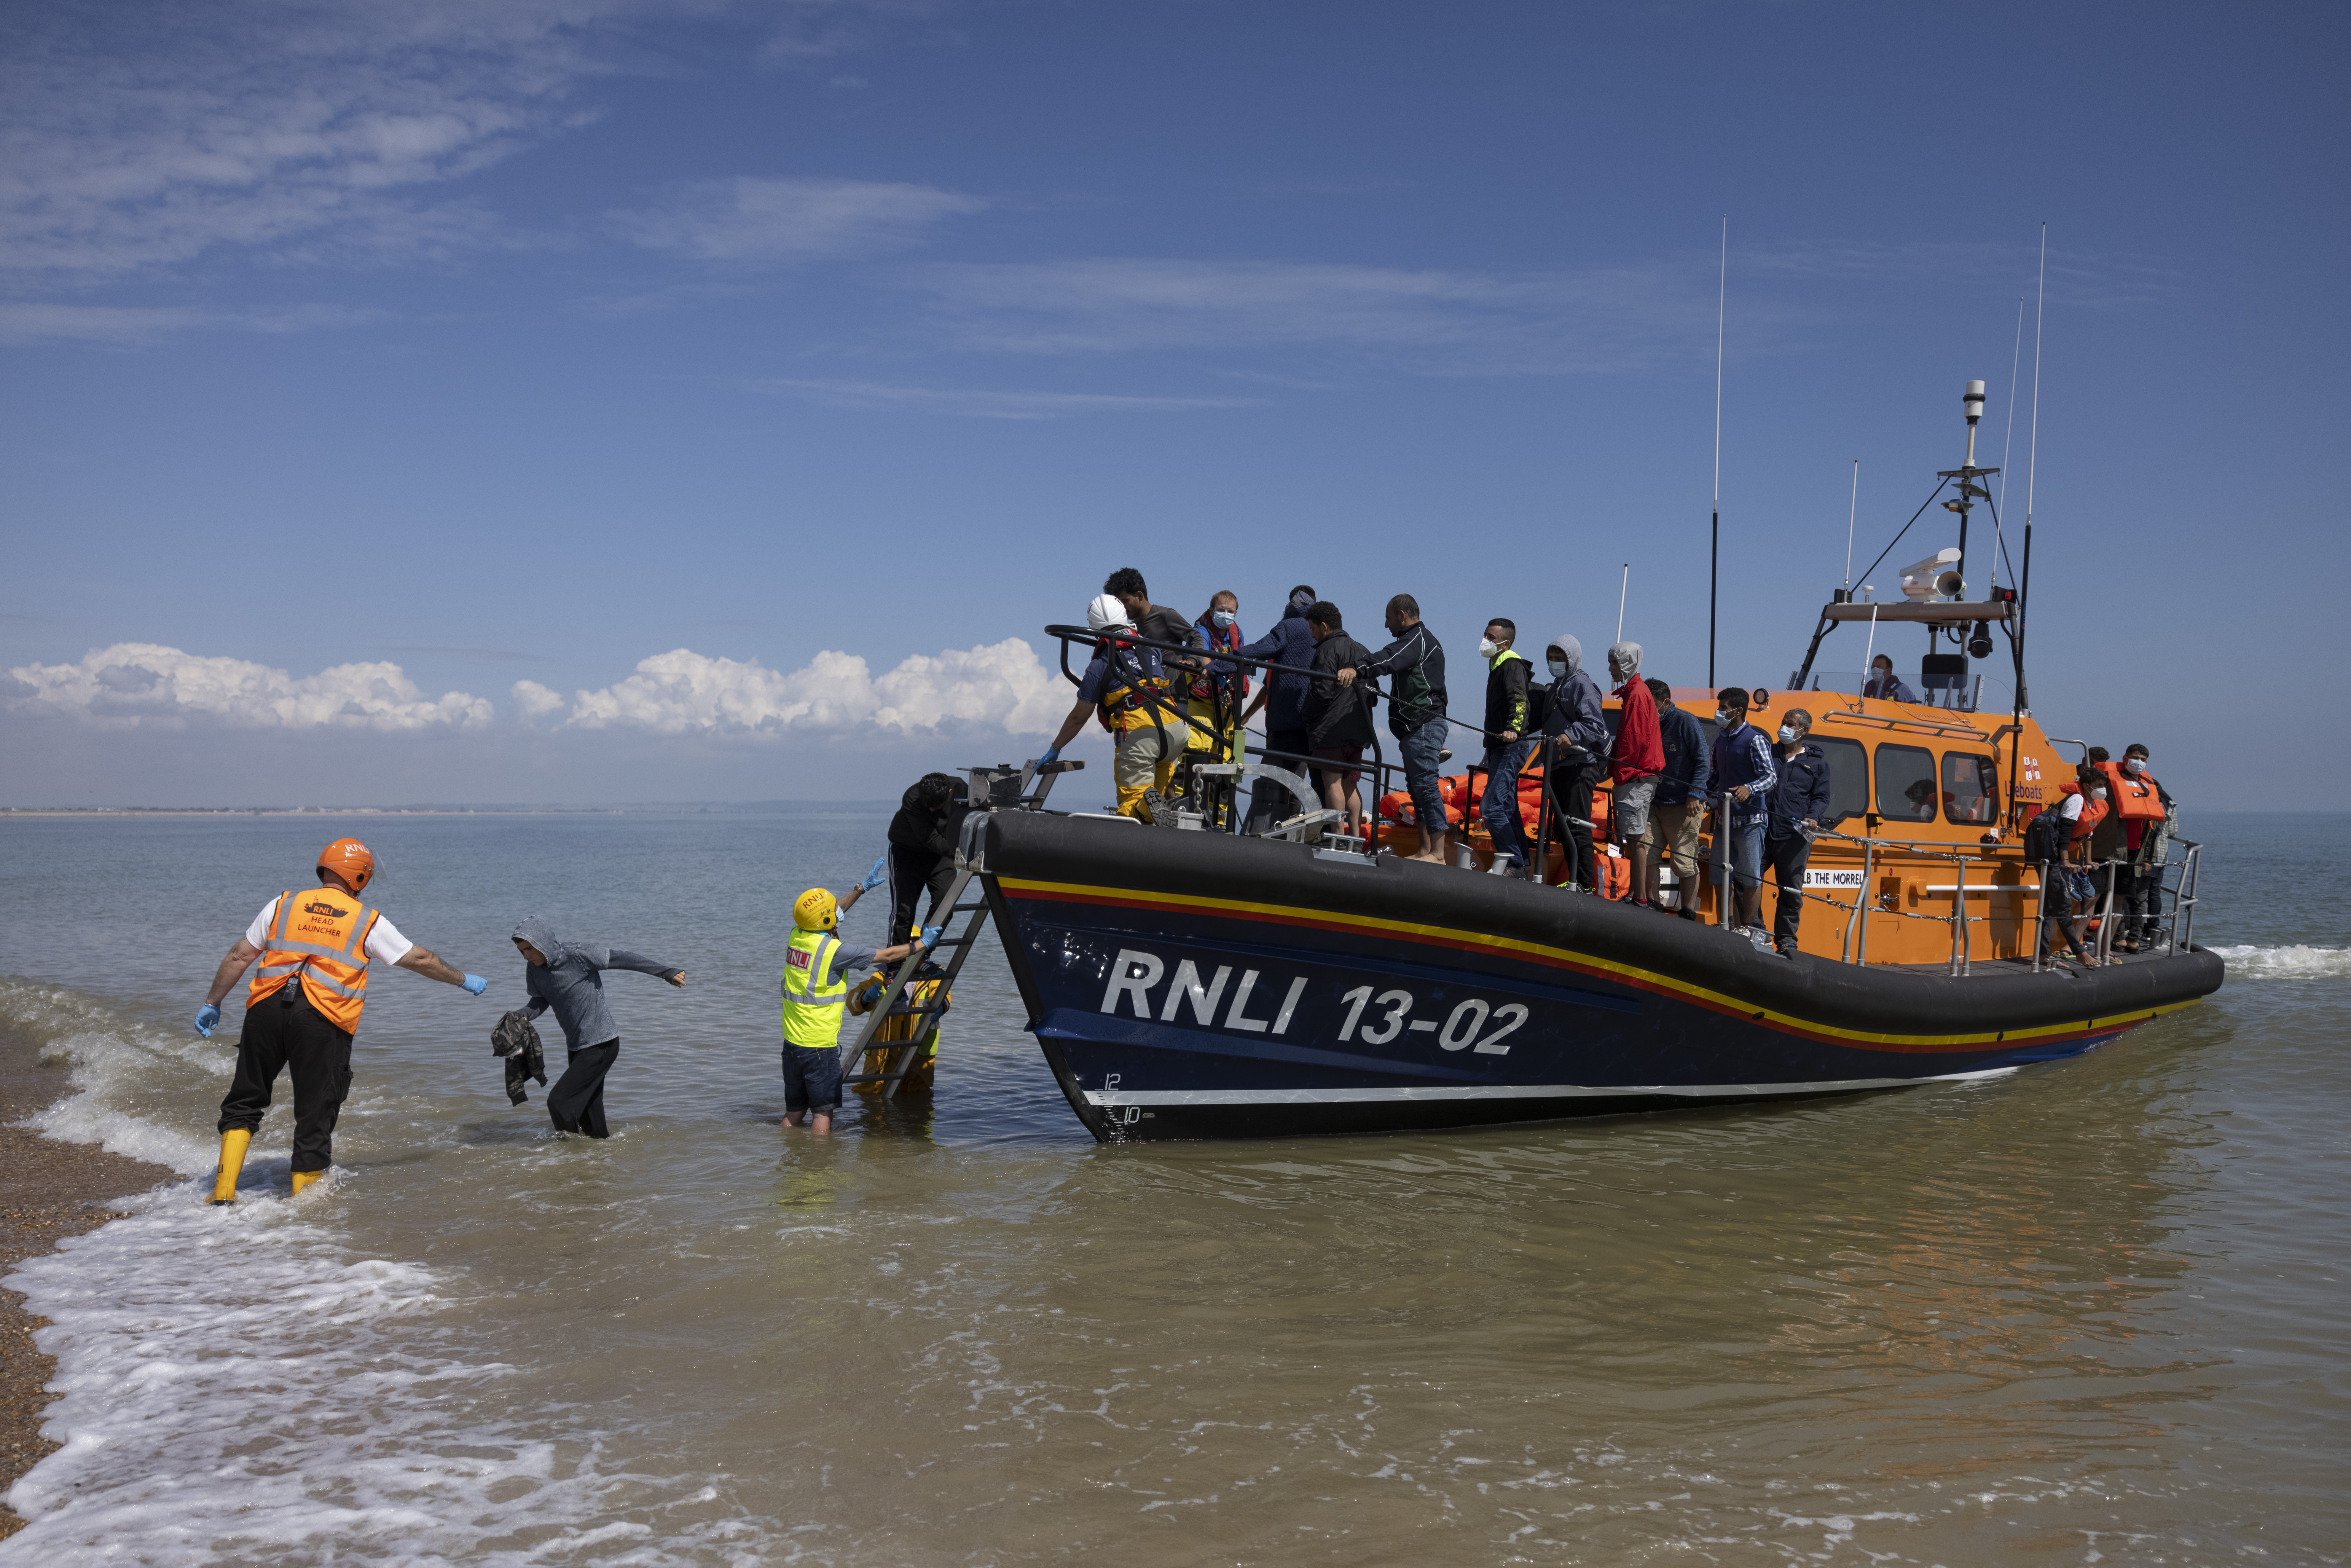 """<p>DUNGENESS, ENGLAND - AUGUST 04: A group of around 40 migrants arrive via the RNLI (Royal National Lifeboat Institution) on Dungeness beach on August 04, 2021 in Dungeness, England. UK Home Secretary Priti Patel recently said that the government would seek to criminalise irregular migration, accusing people smugglers of """"exploiting our asylum system to bring in economic migrants and people that, quite frankly, are circumventing our legal migration routes."""" (Photo by Dan Kitwood/Getty Images)</p>"""